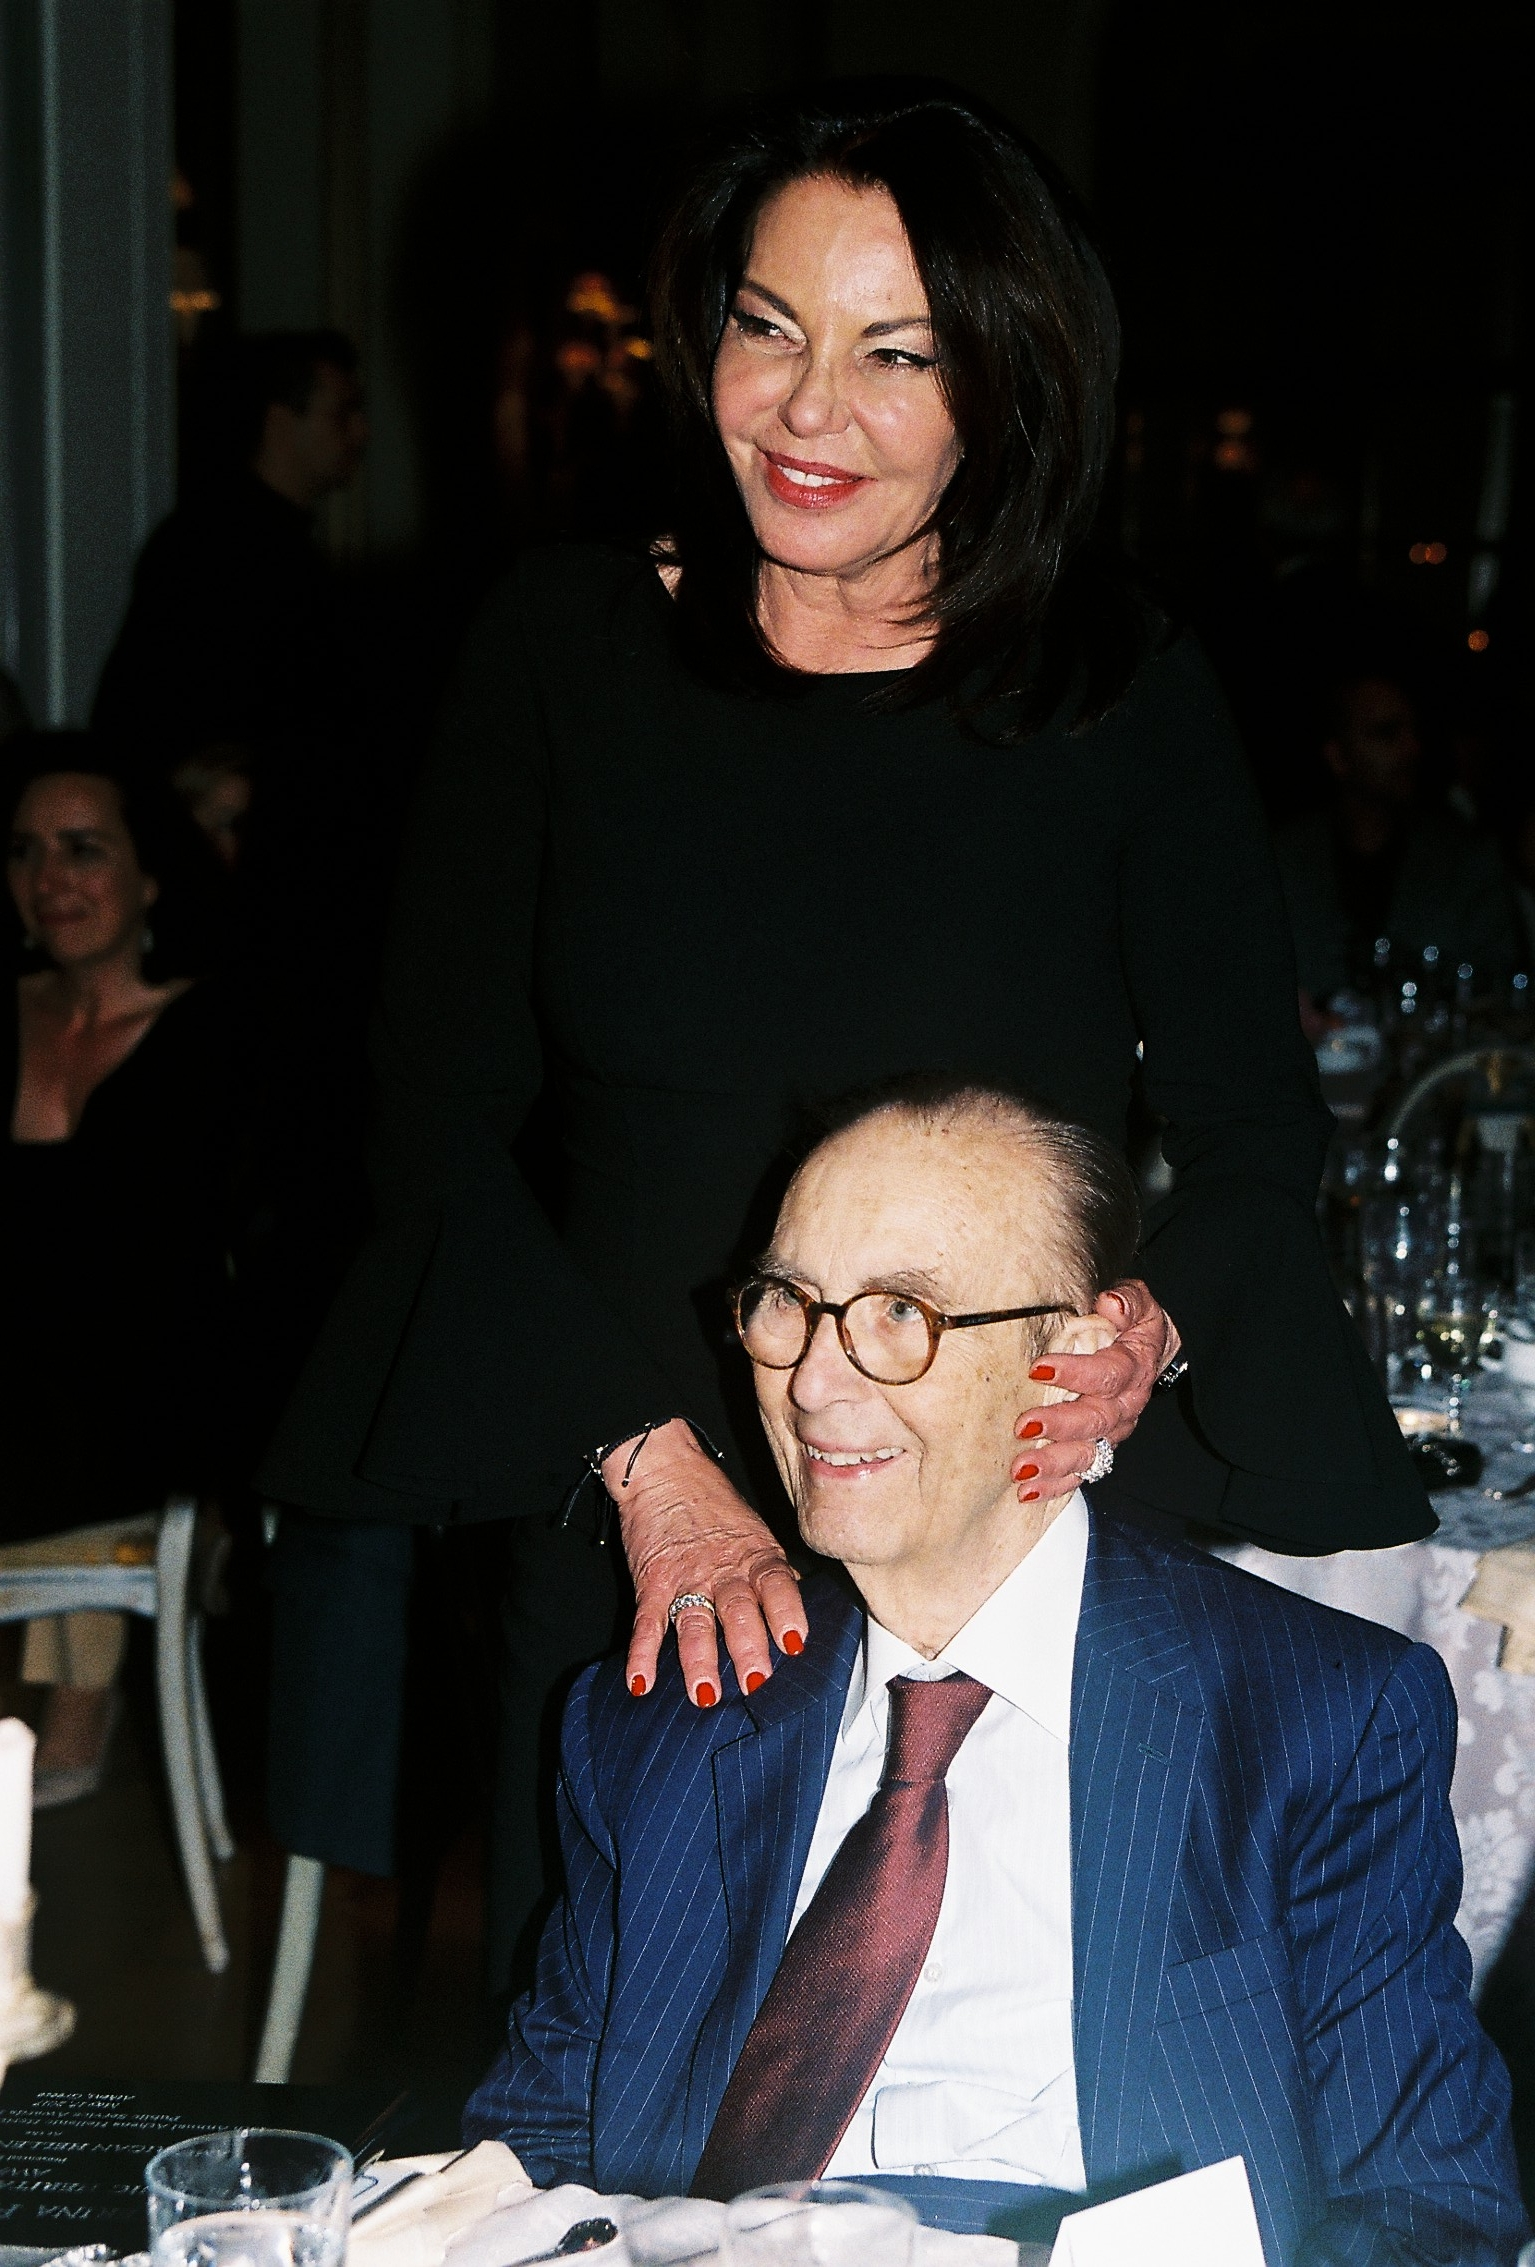 Katerina P. Panagopoulos with her husband Periclis Panagopoulos